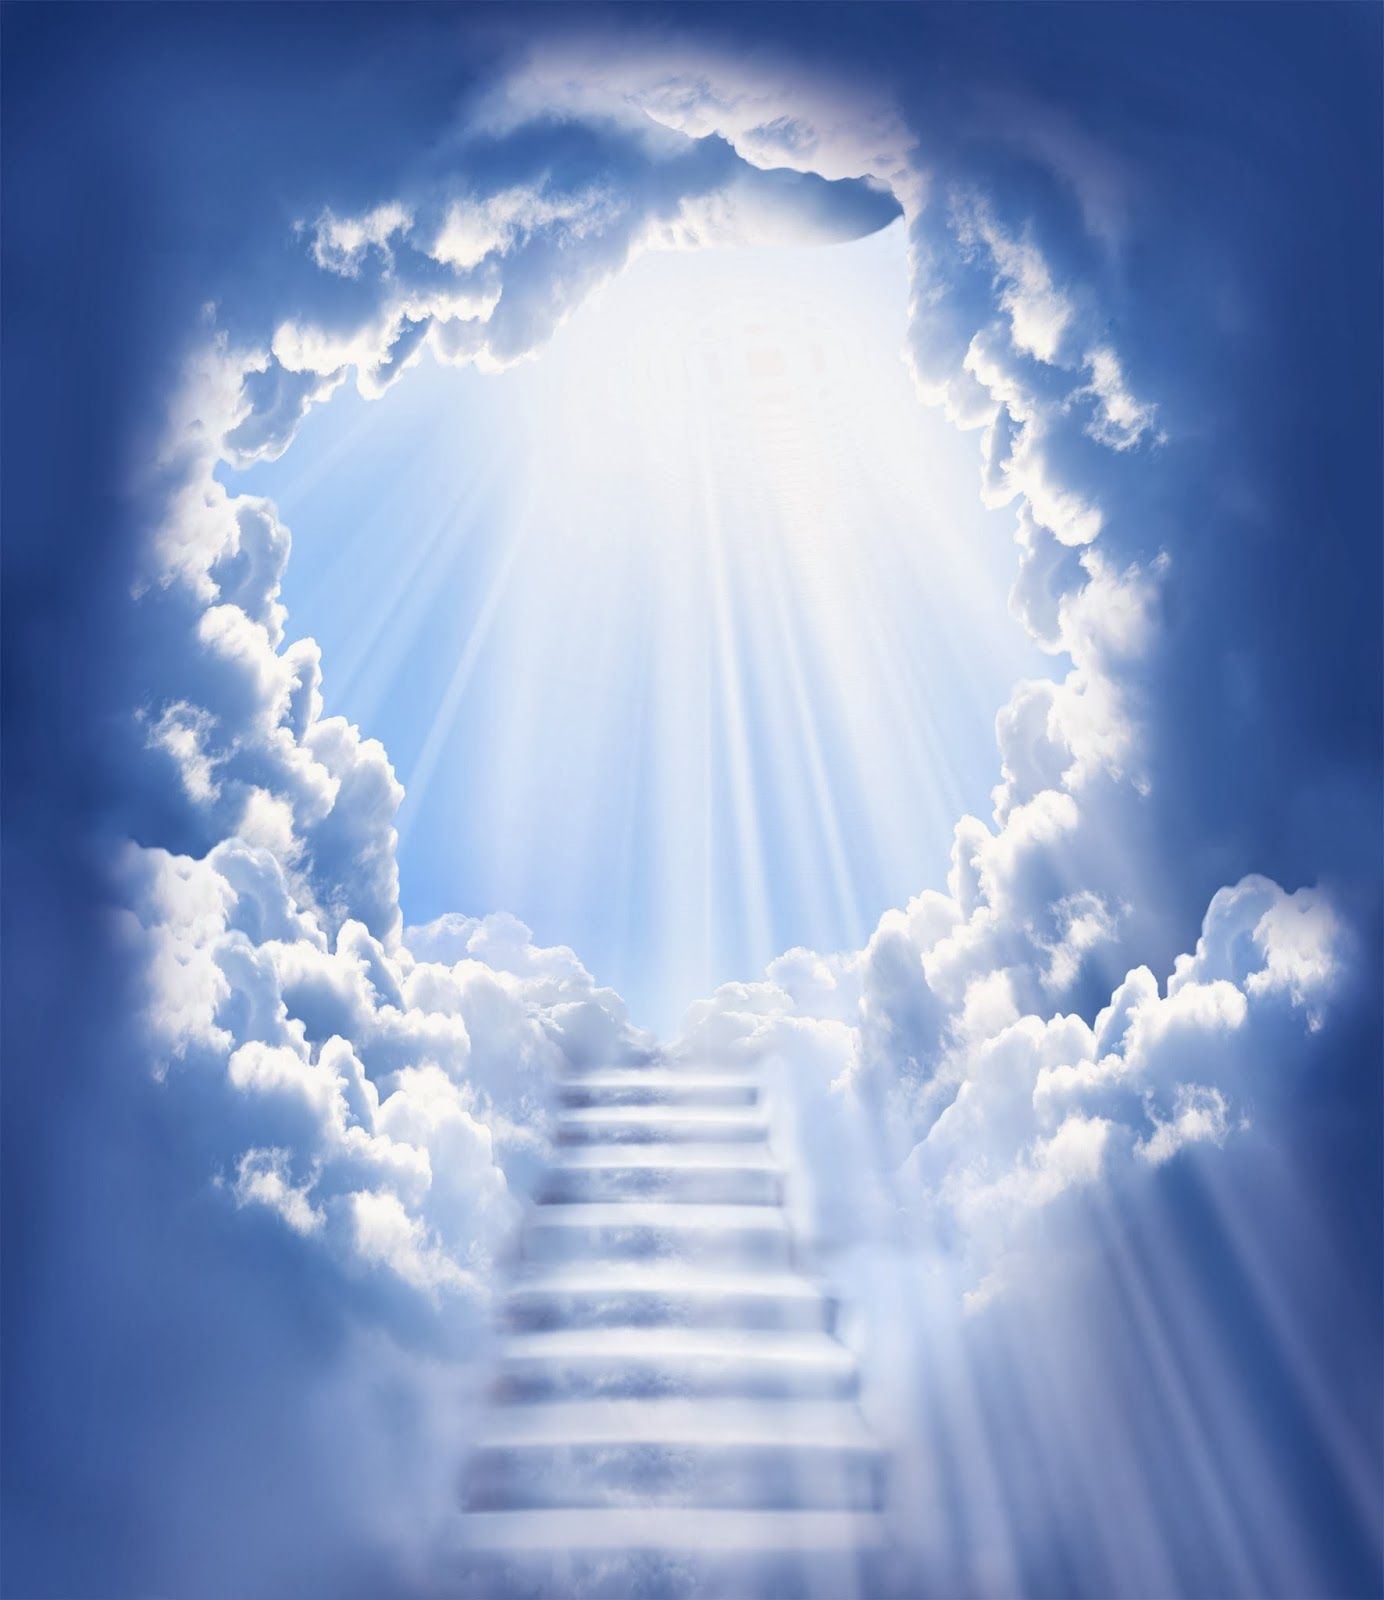 Animated Stairway To Heaven gif.